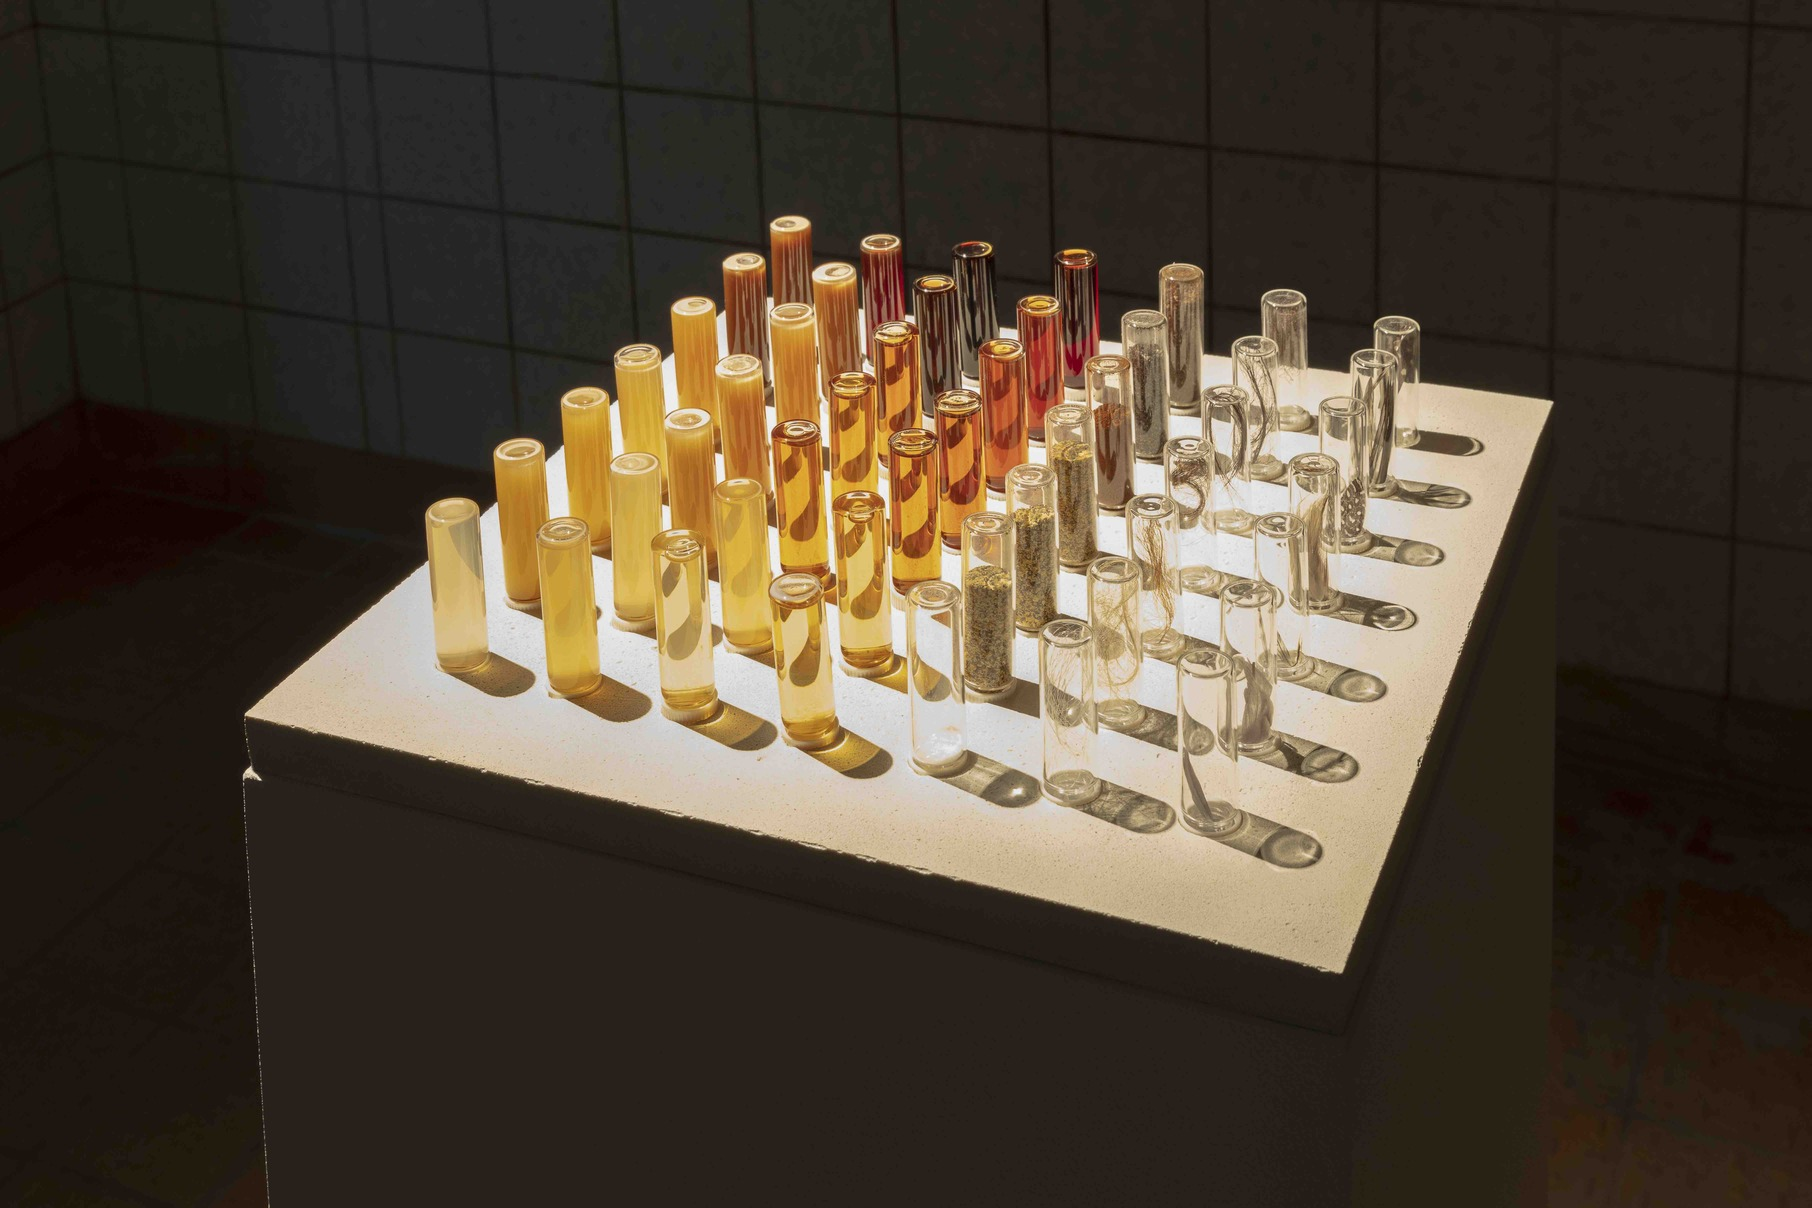 Neri Oxman, Melanin Library, 2020, Concrete base, glass screw top vials containing a variety of organically and synthetically sourced melanin